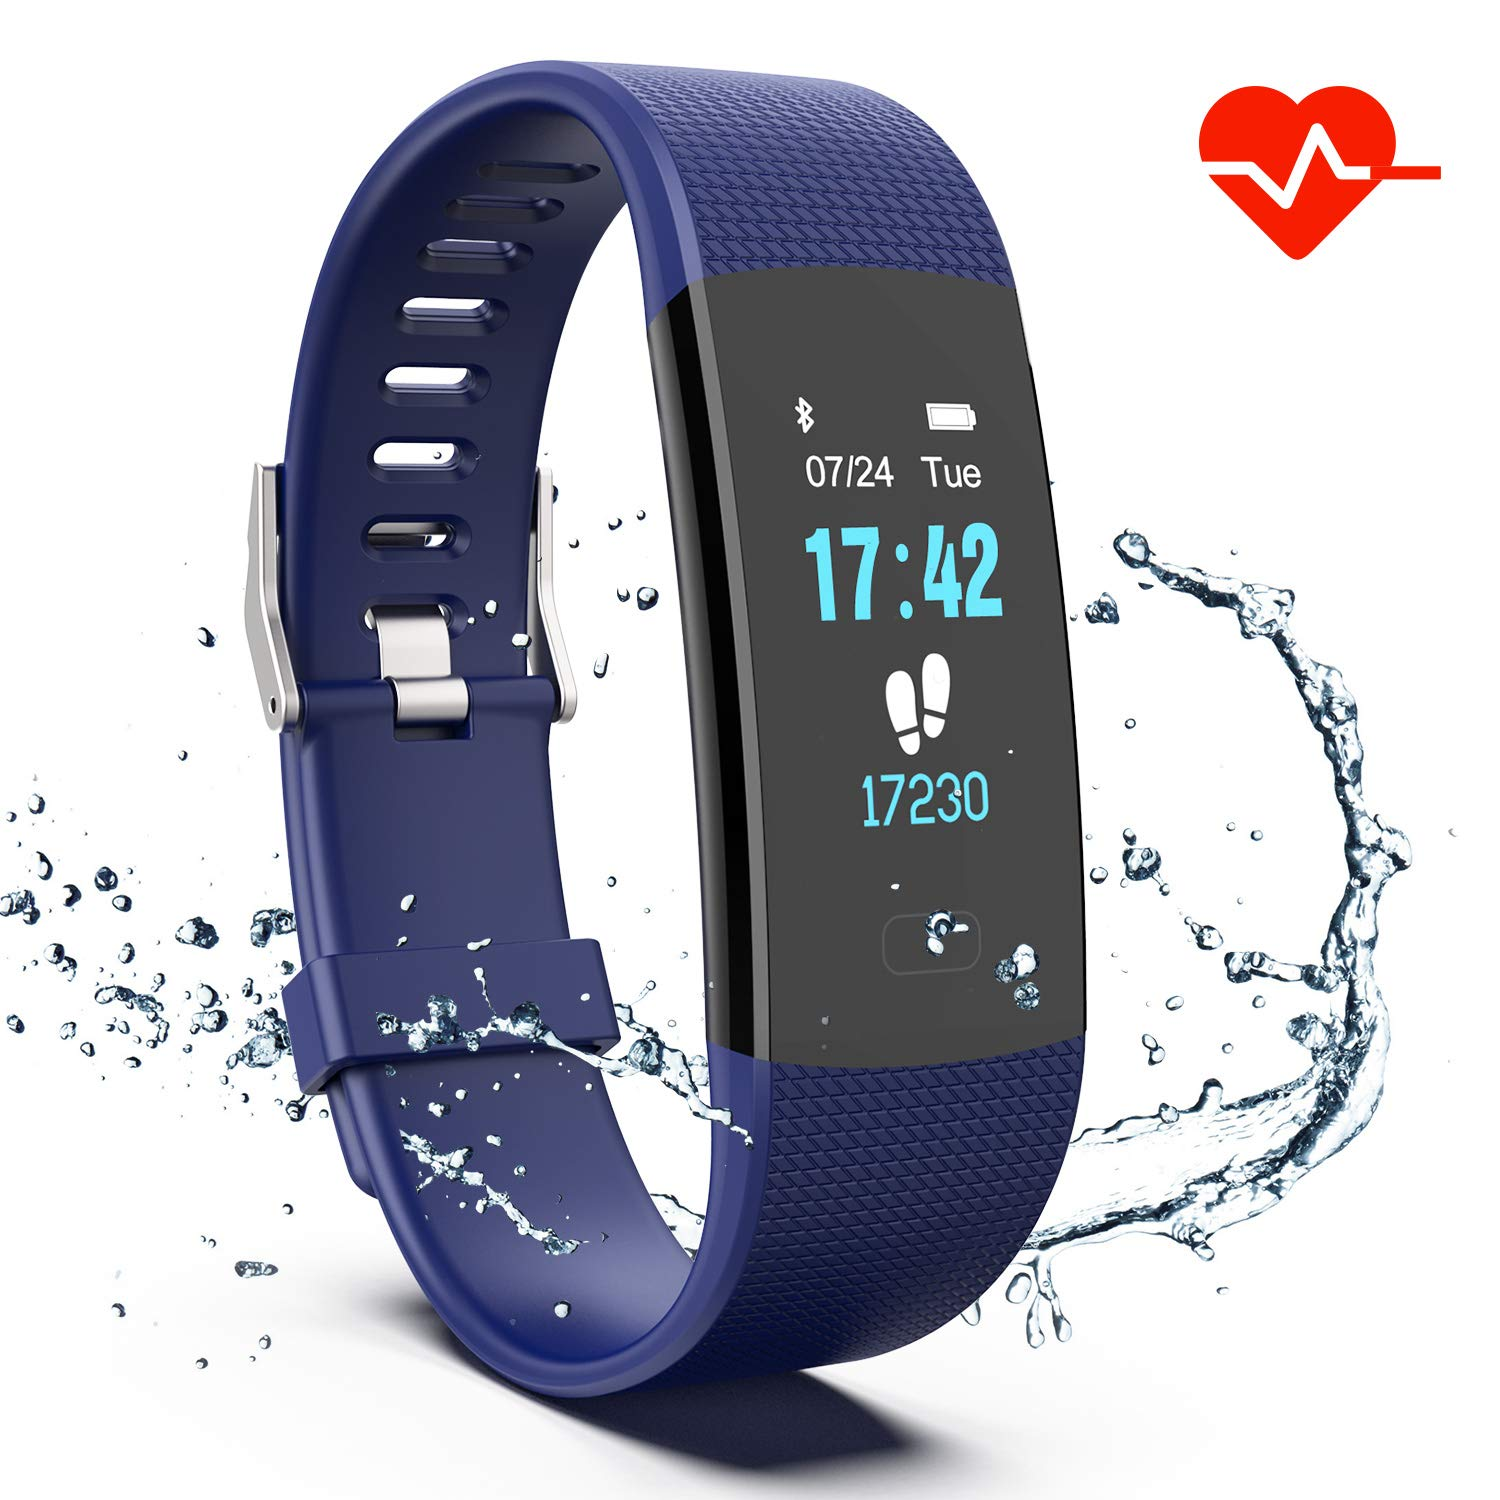 Fitness Tracker Colorful Activity Tracker Watch with Heart Rate Monitor Pedometer IP67 Waterproof Sleep Monitor Step Counter for Kids Women and Men